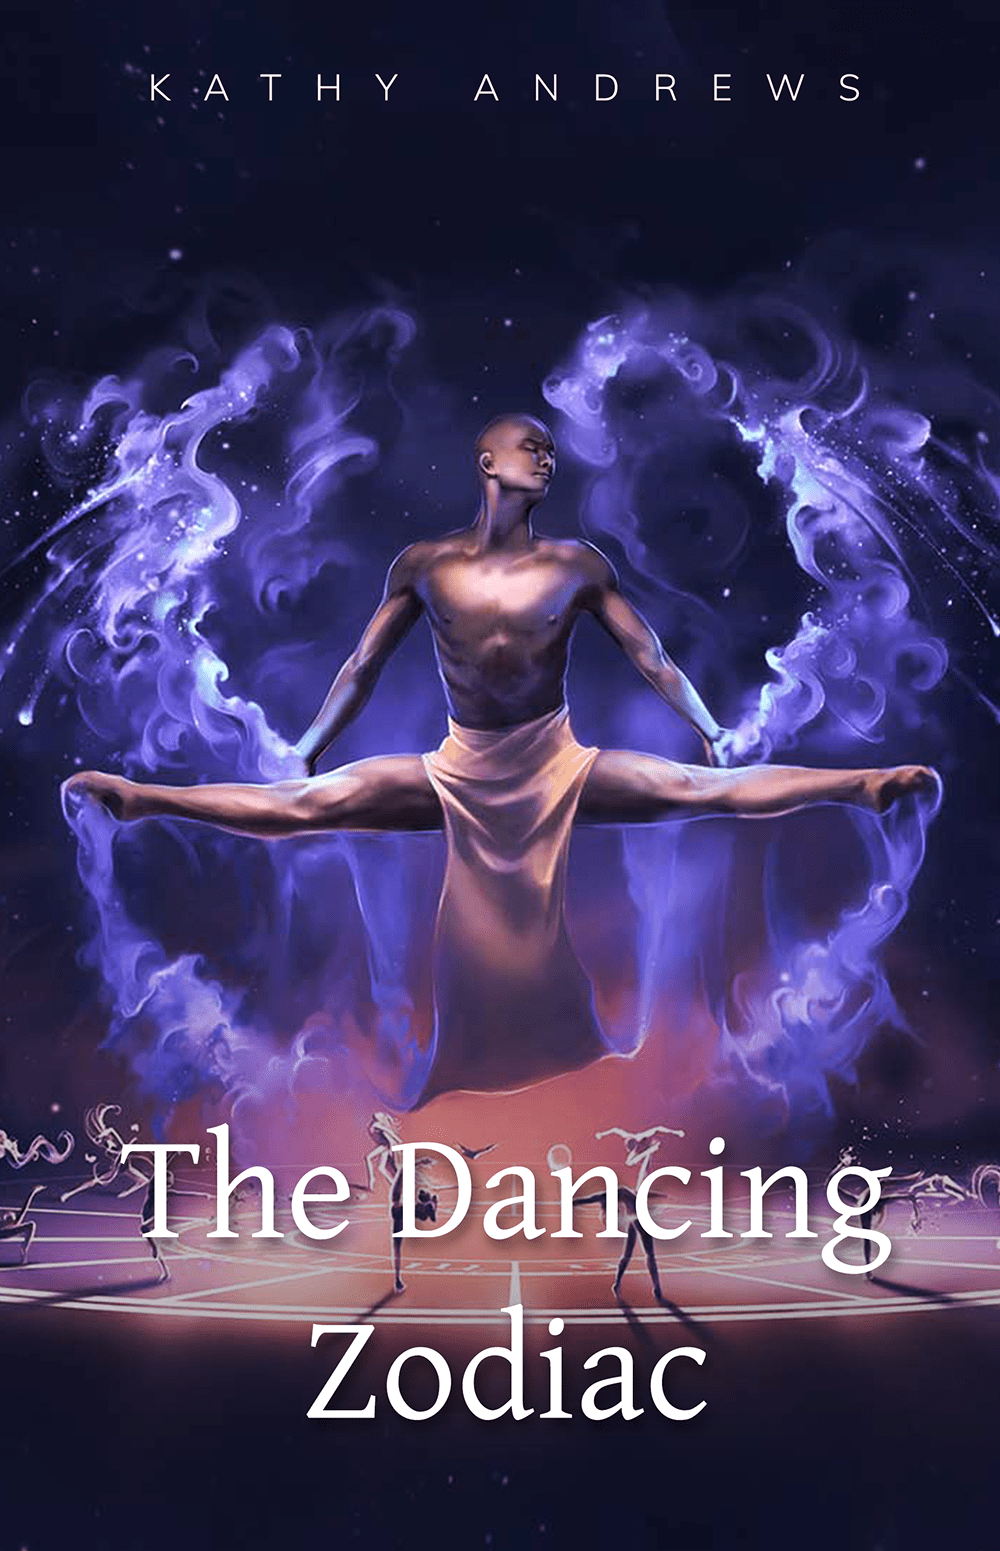 //subsolardesigns.com/odrin/demo1/wp-content/uploads/sites/8/2017/05/cover_dancing_zodiac2a.png